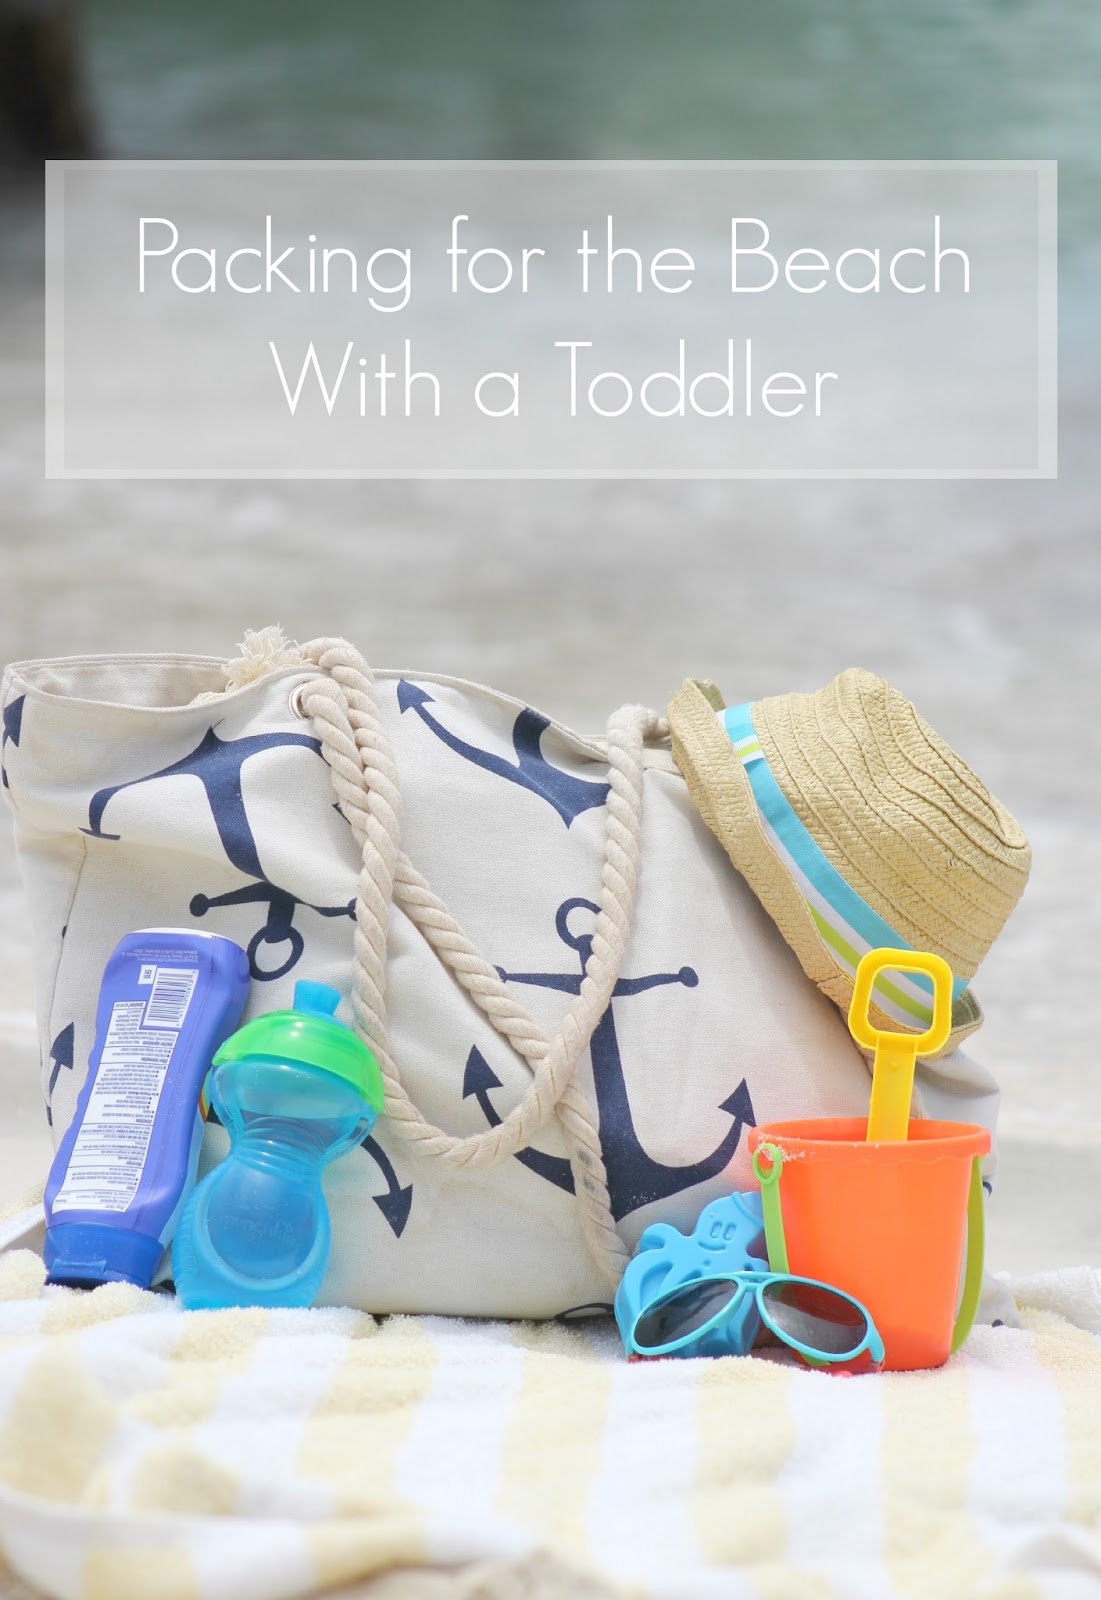 Taking a toddler to the beach